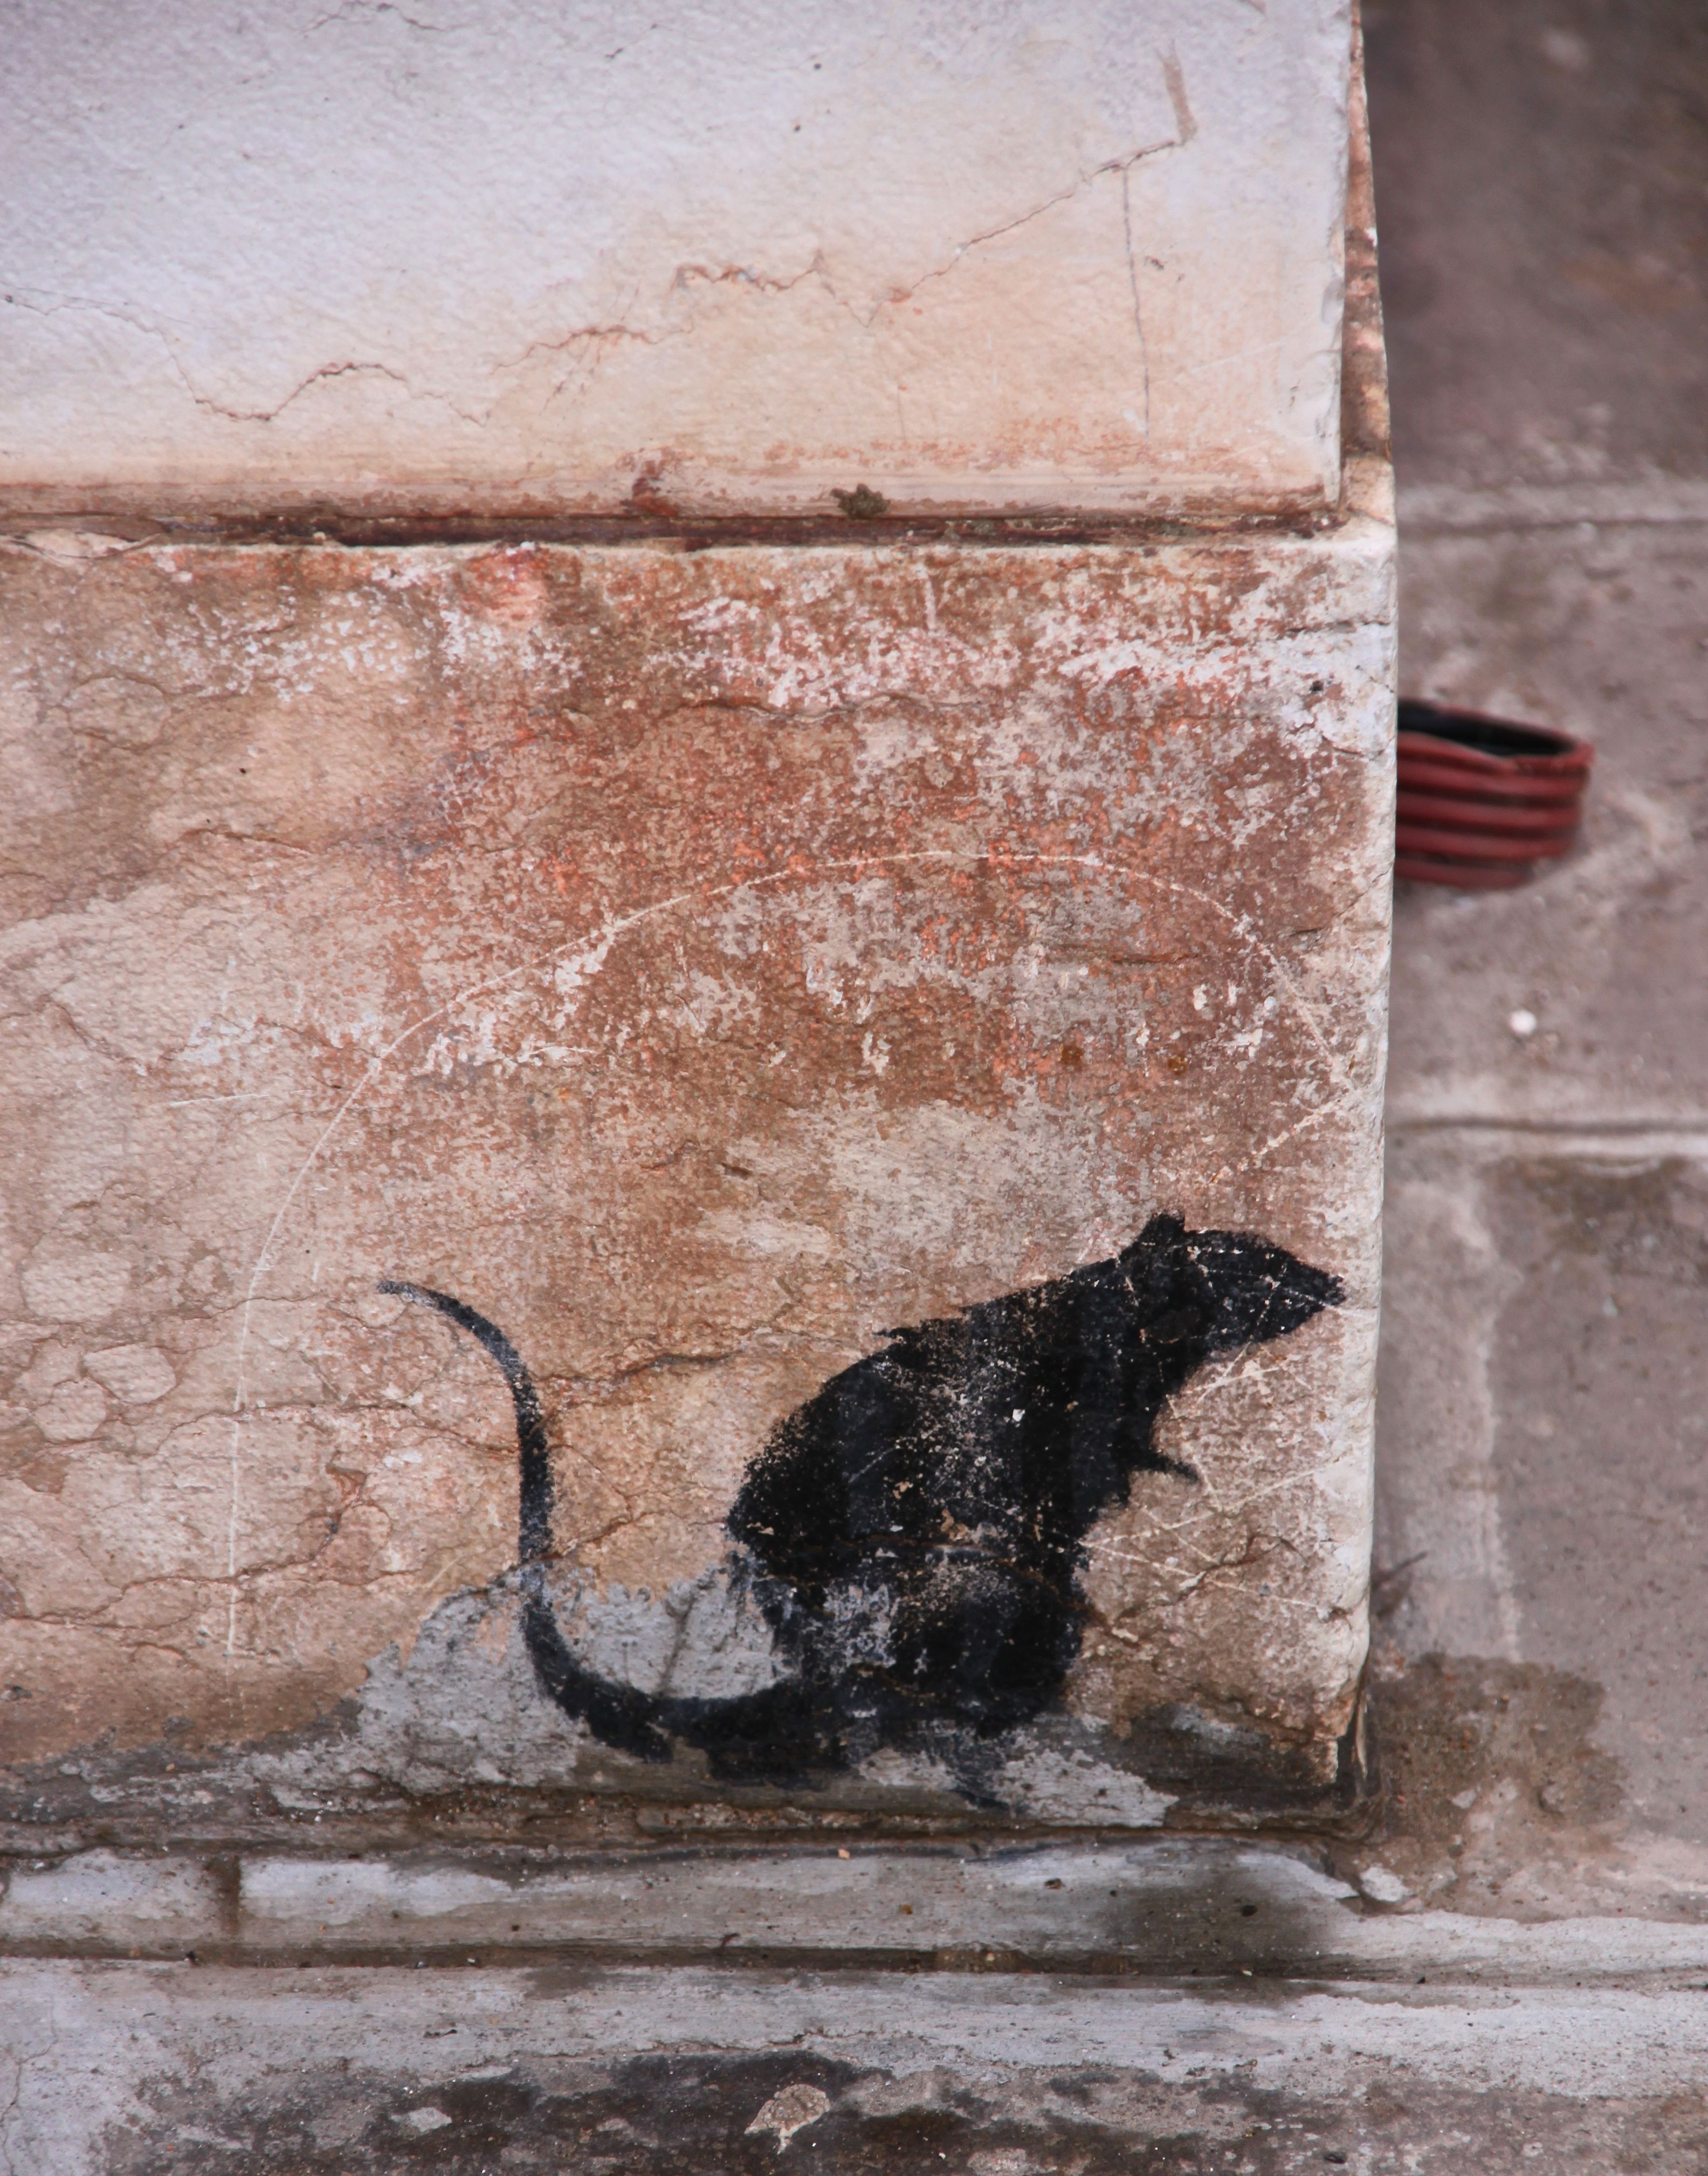 A Banksy-style rat on a wall in Venice refers to estimates that there are 6 rats in Venice for every human